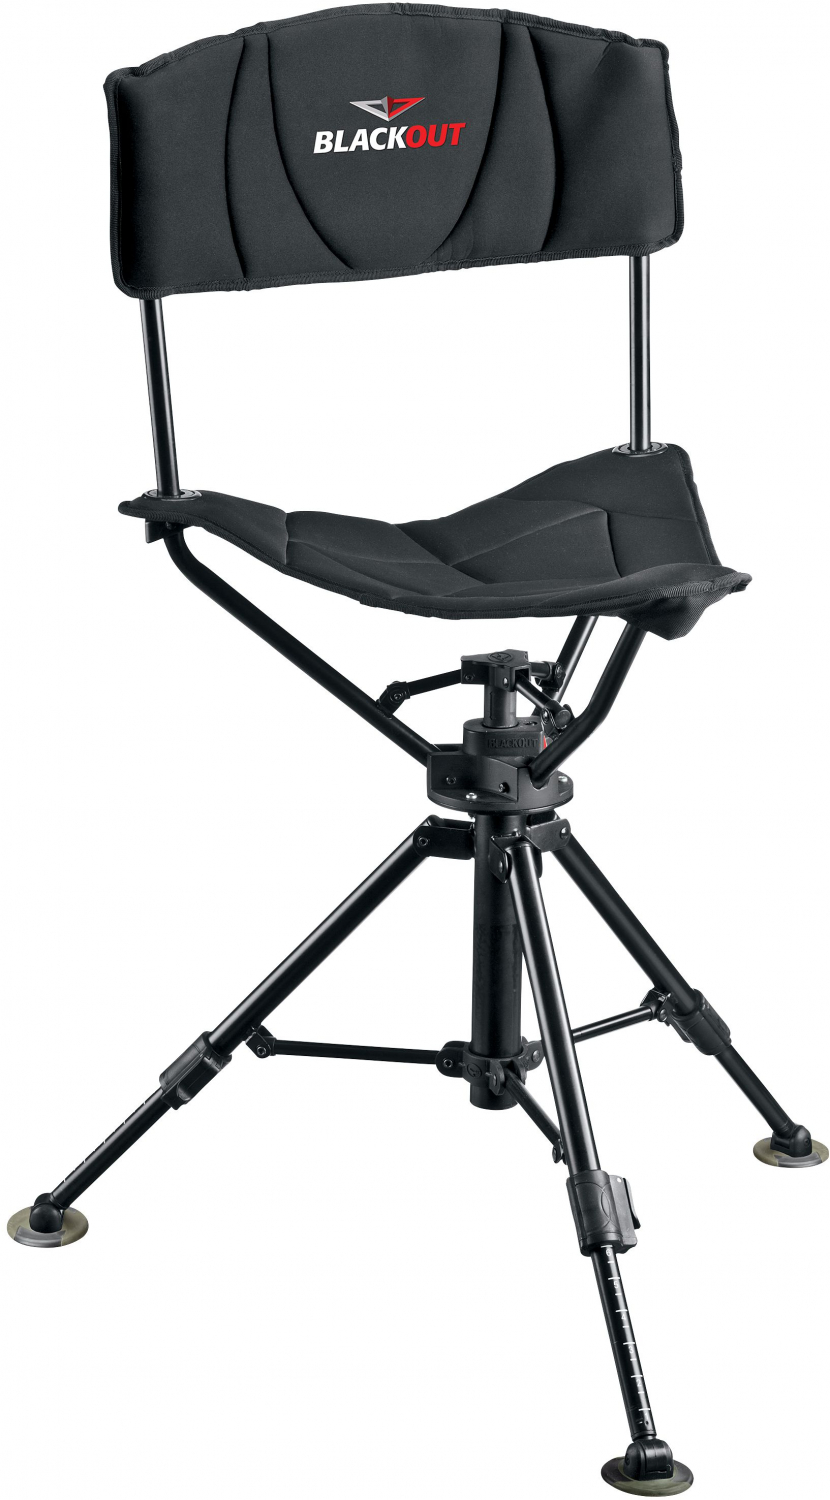 Astounding Details About Blackout Tripod Swivel Chair 360 Turn For Hunting Adjustable Legs Durable Seat Creativecarmelina Interior Chair Design Creativecarmelinacom